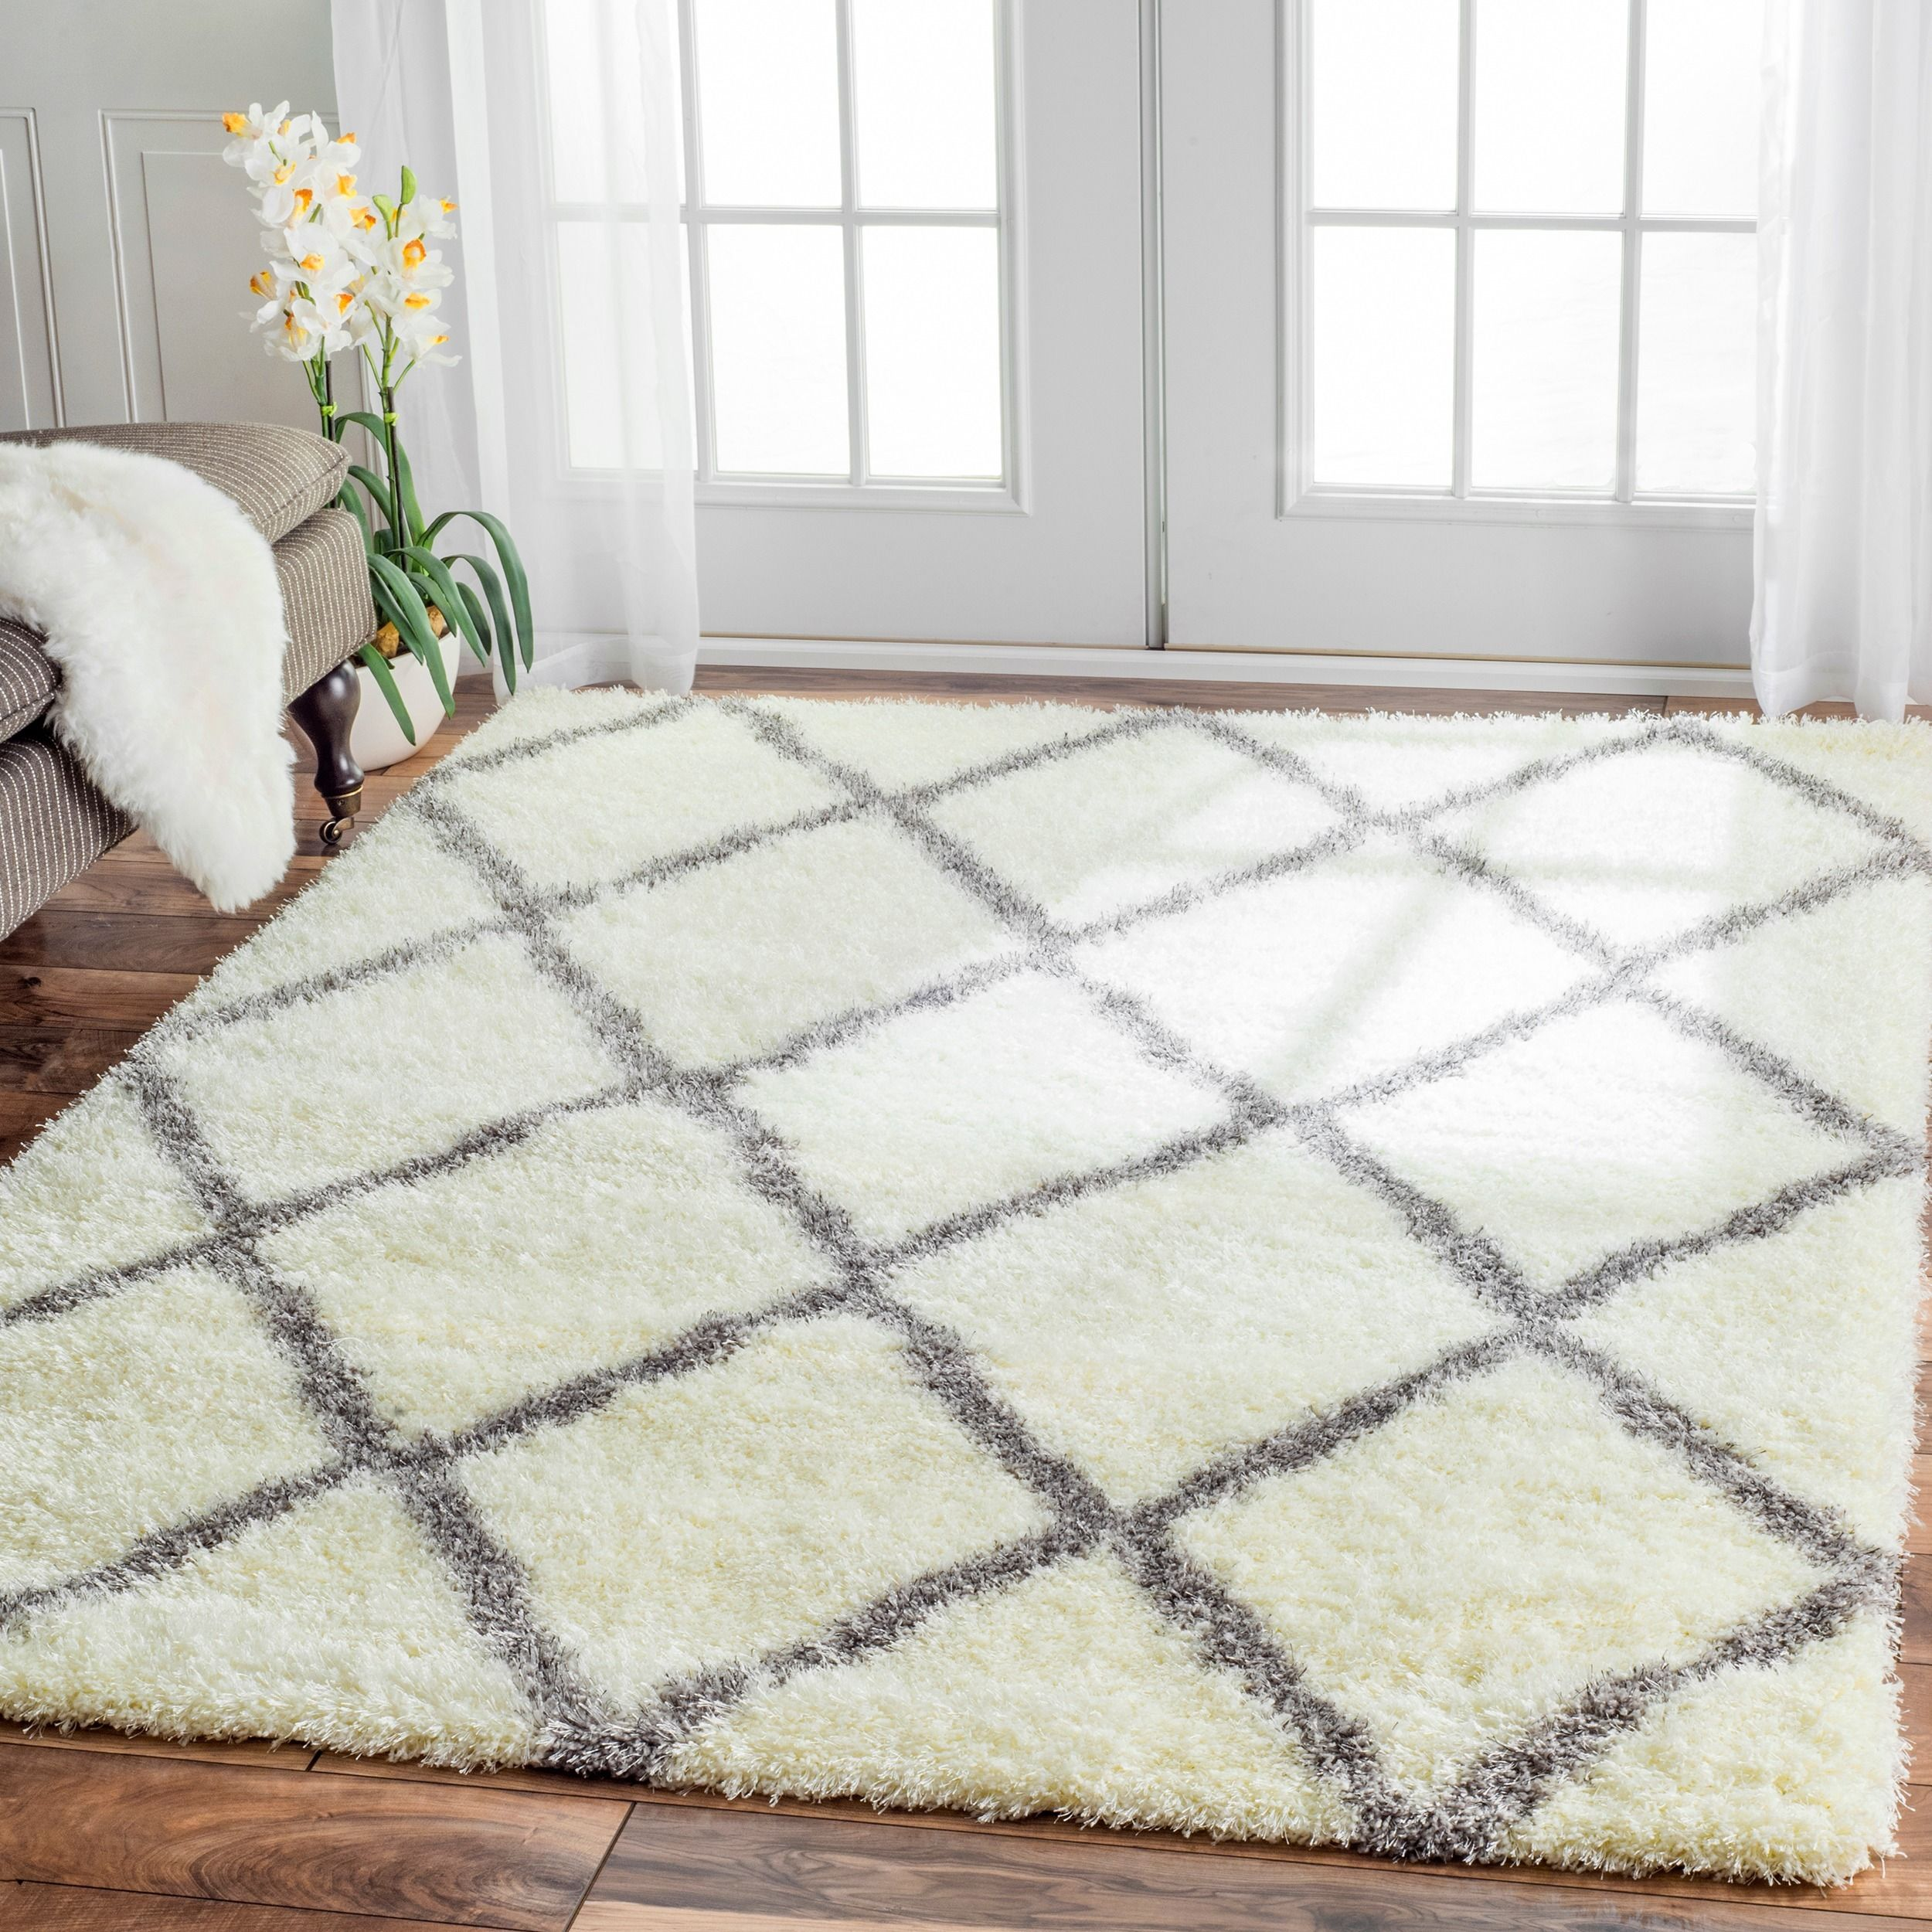 moroccanstyle berber trellis shag rug (' x ') by i love  - inspired by moroccan berber carpets this trellis shag rug adds depth toyour decor